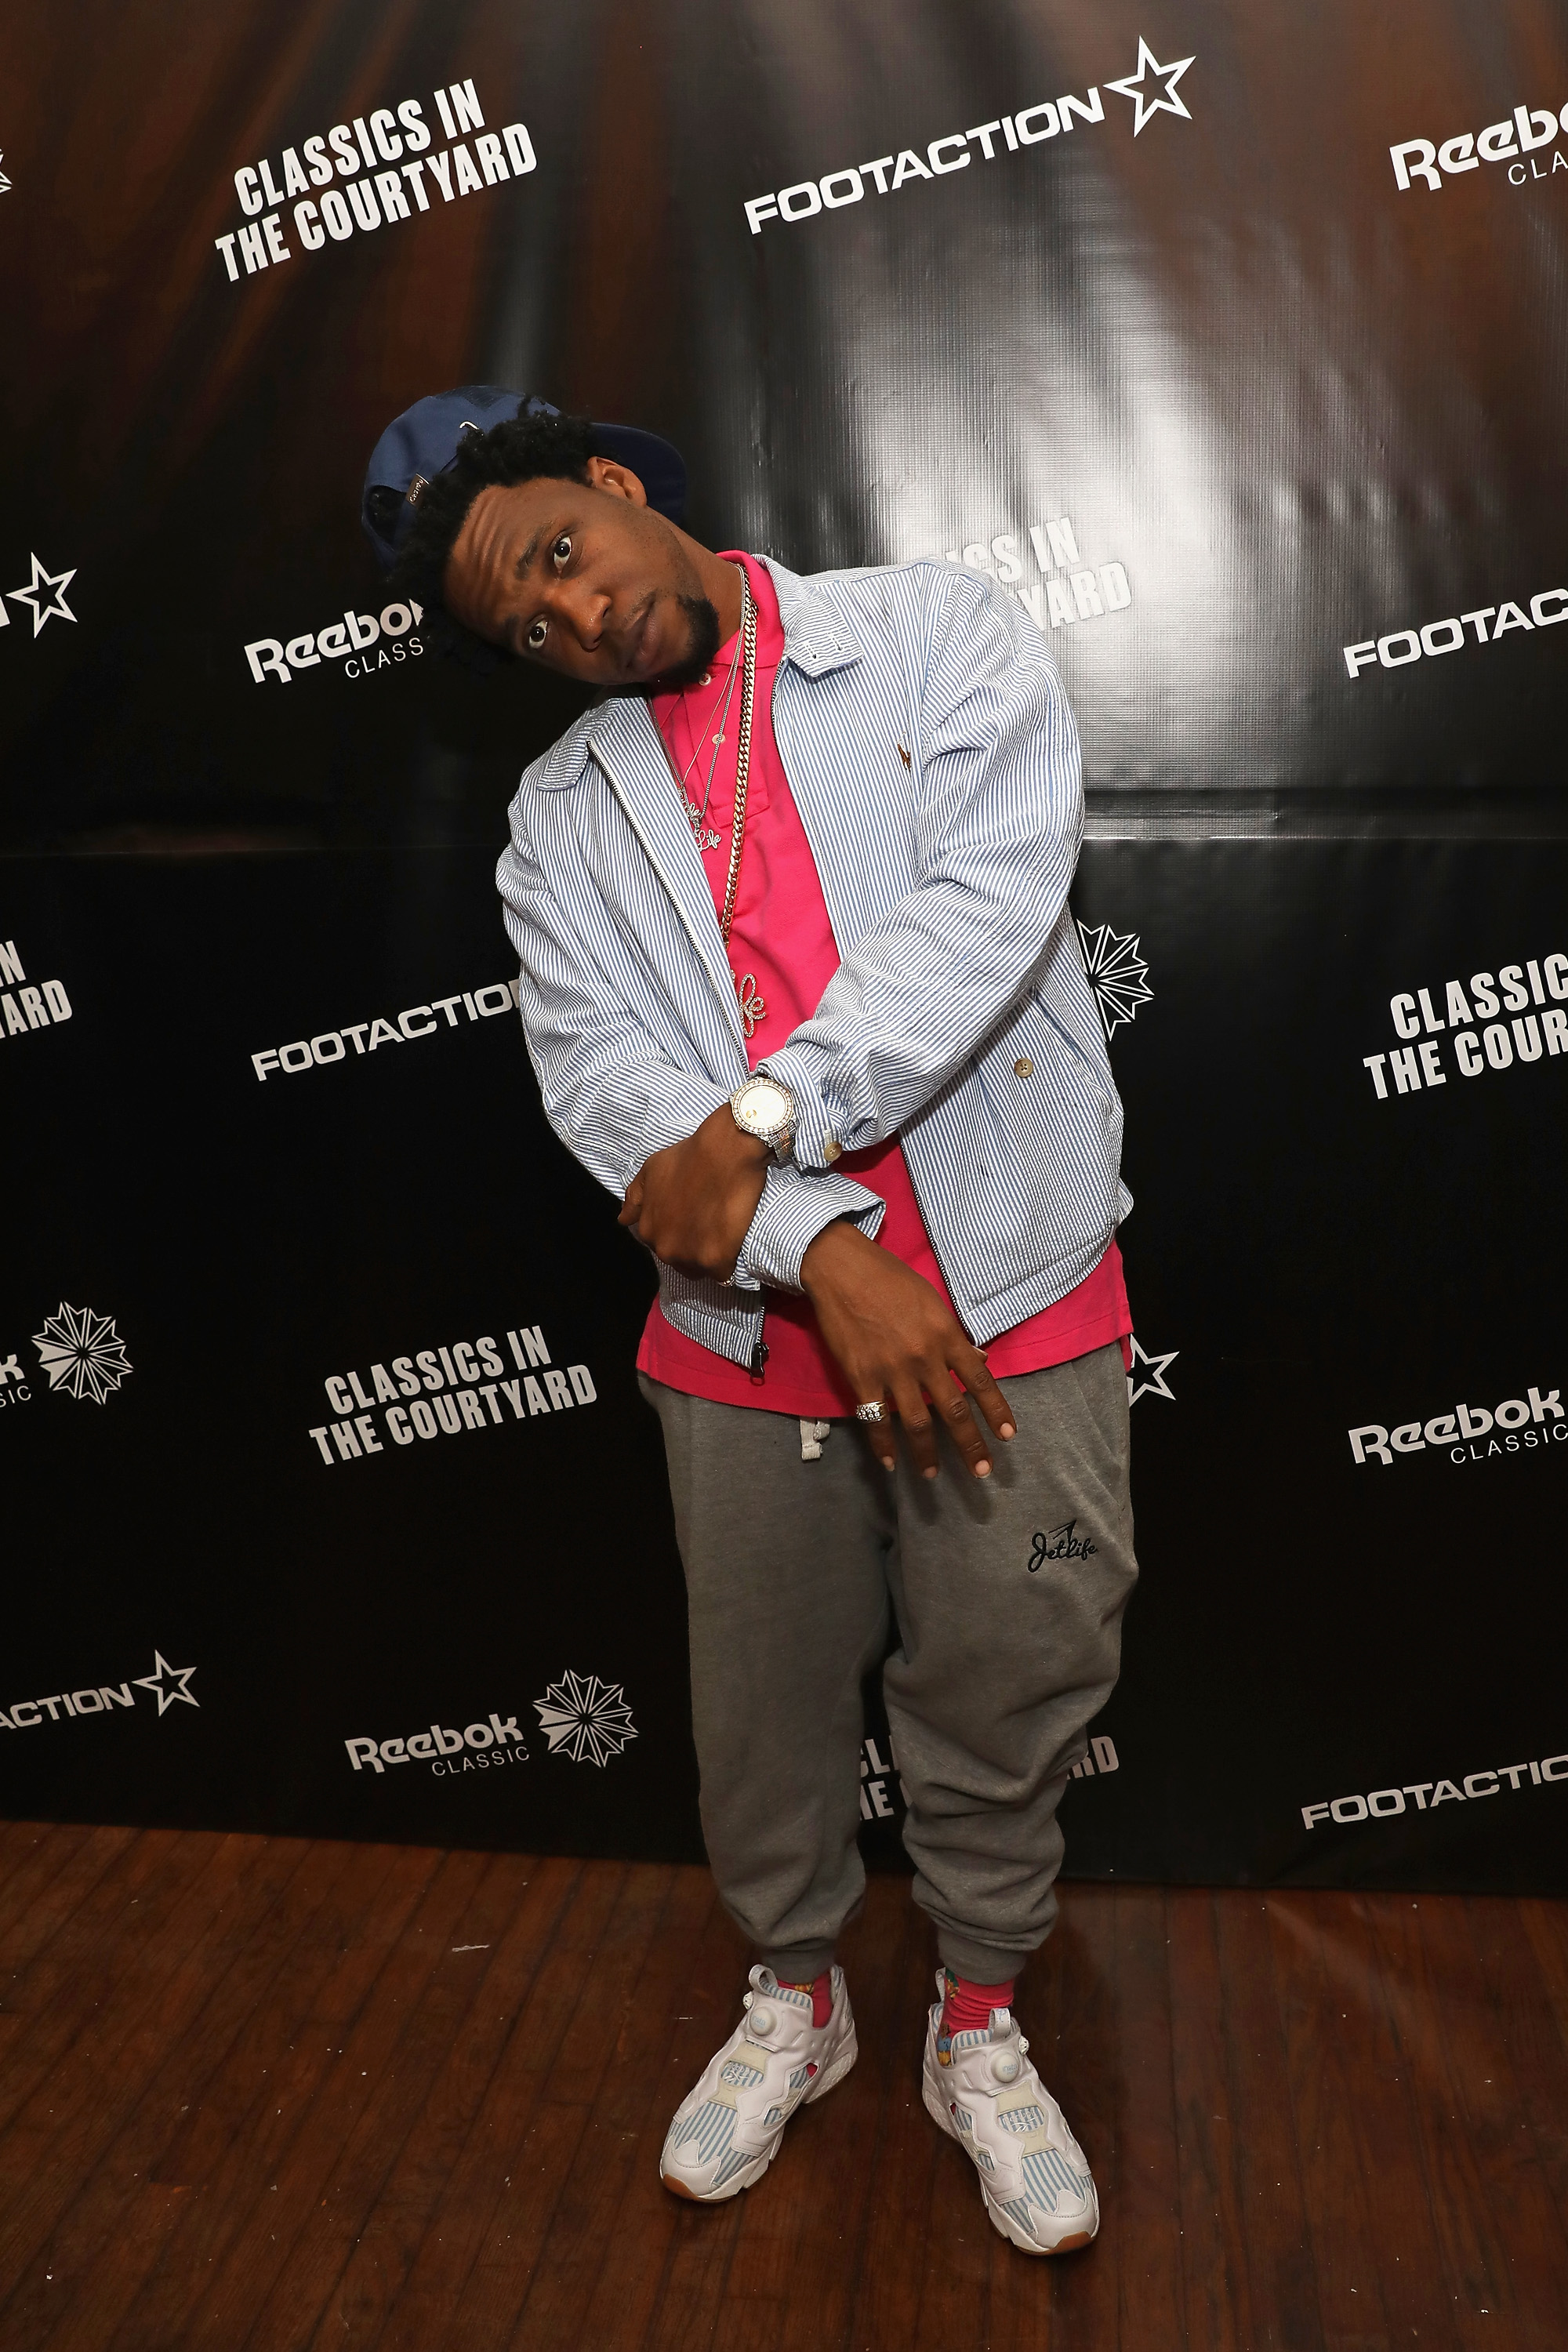 Reebok Classics in the Courtyard teyana taylor cam'ron curren$y 15